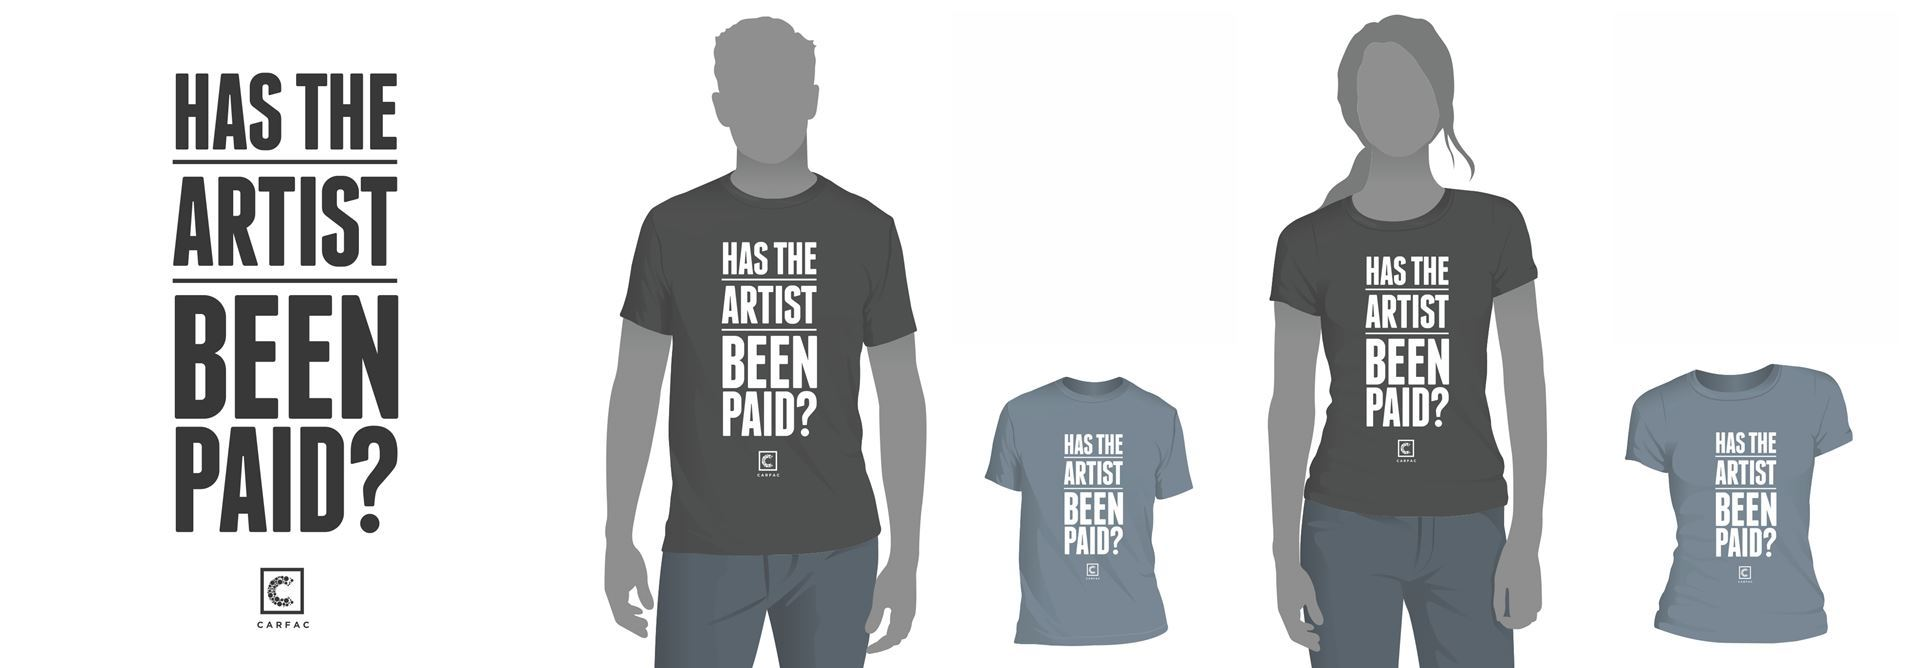 Illustration of the t-shirts